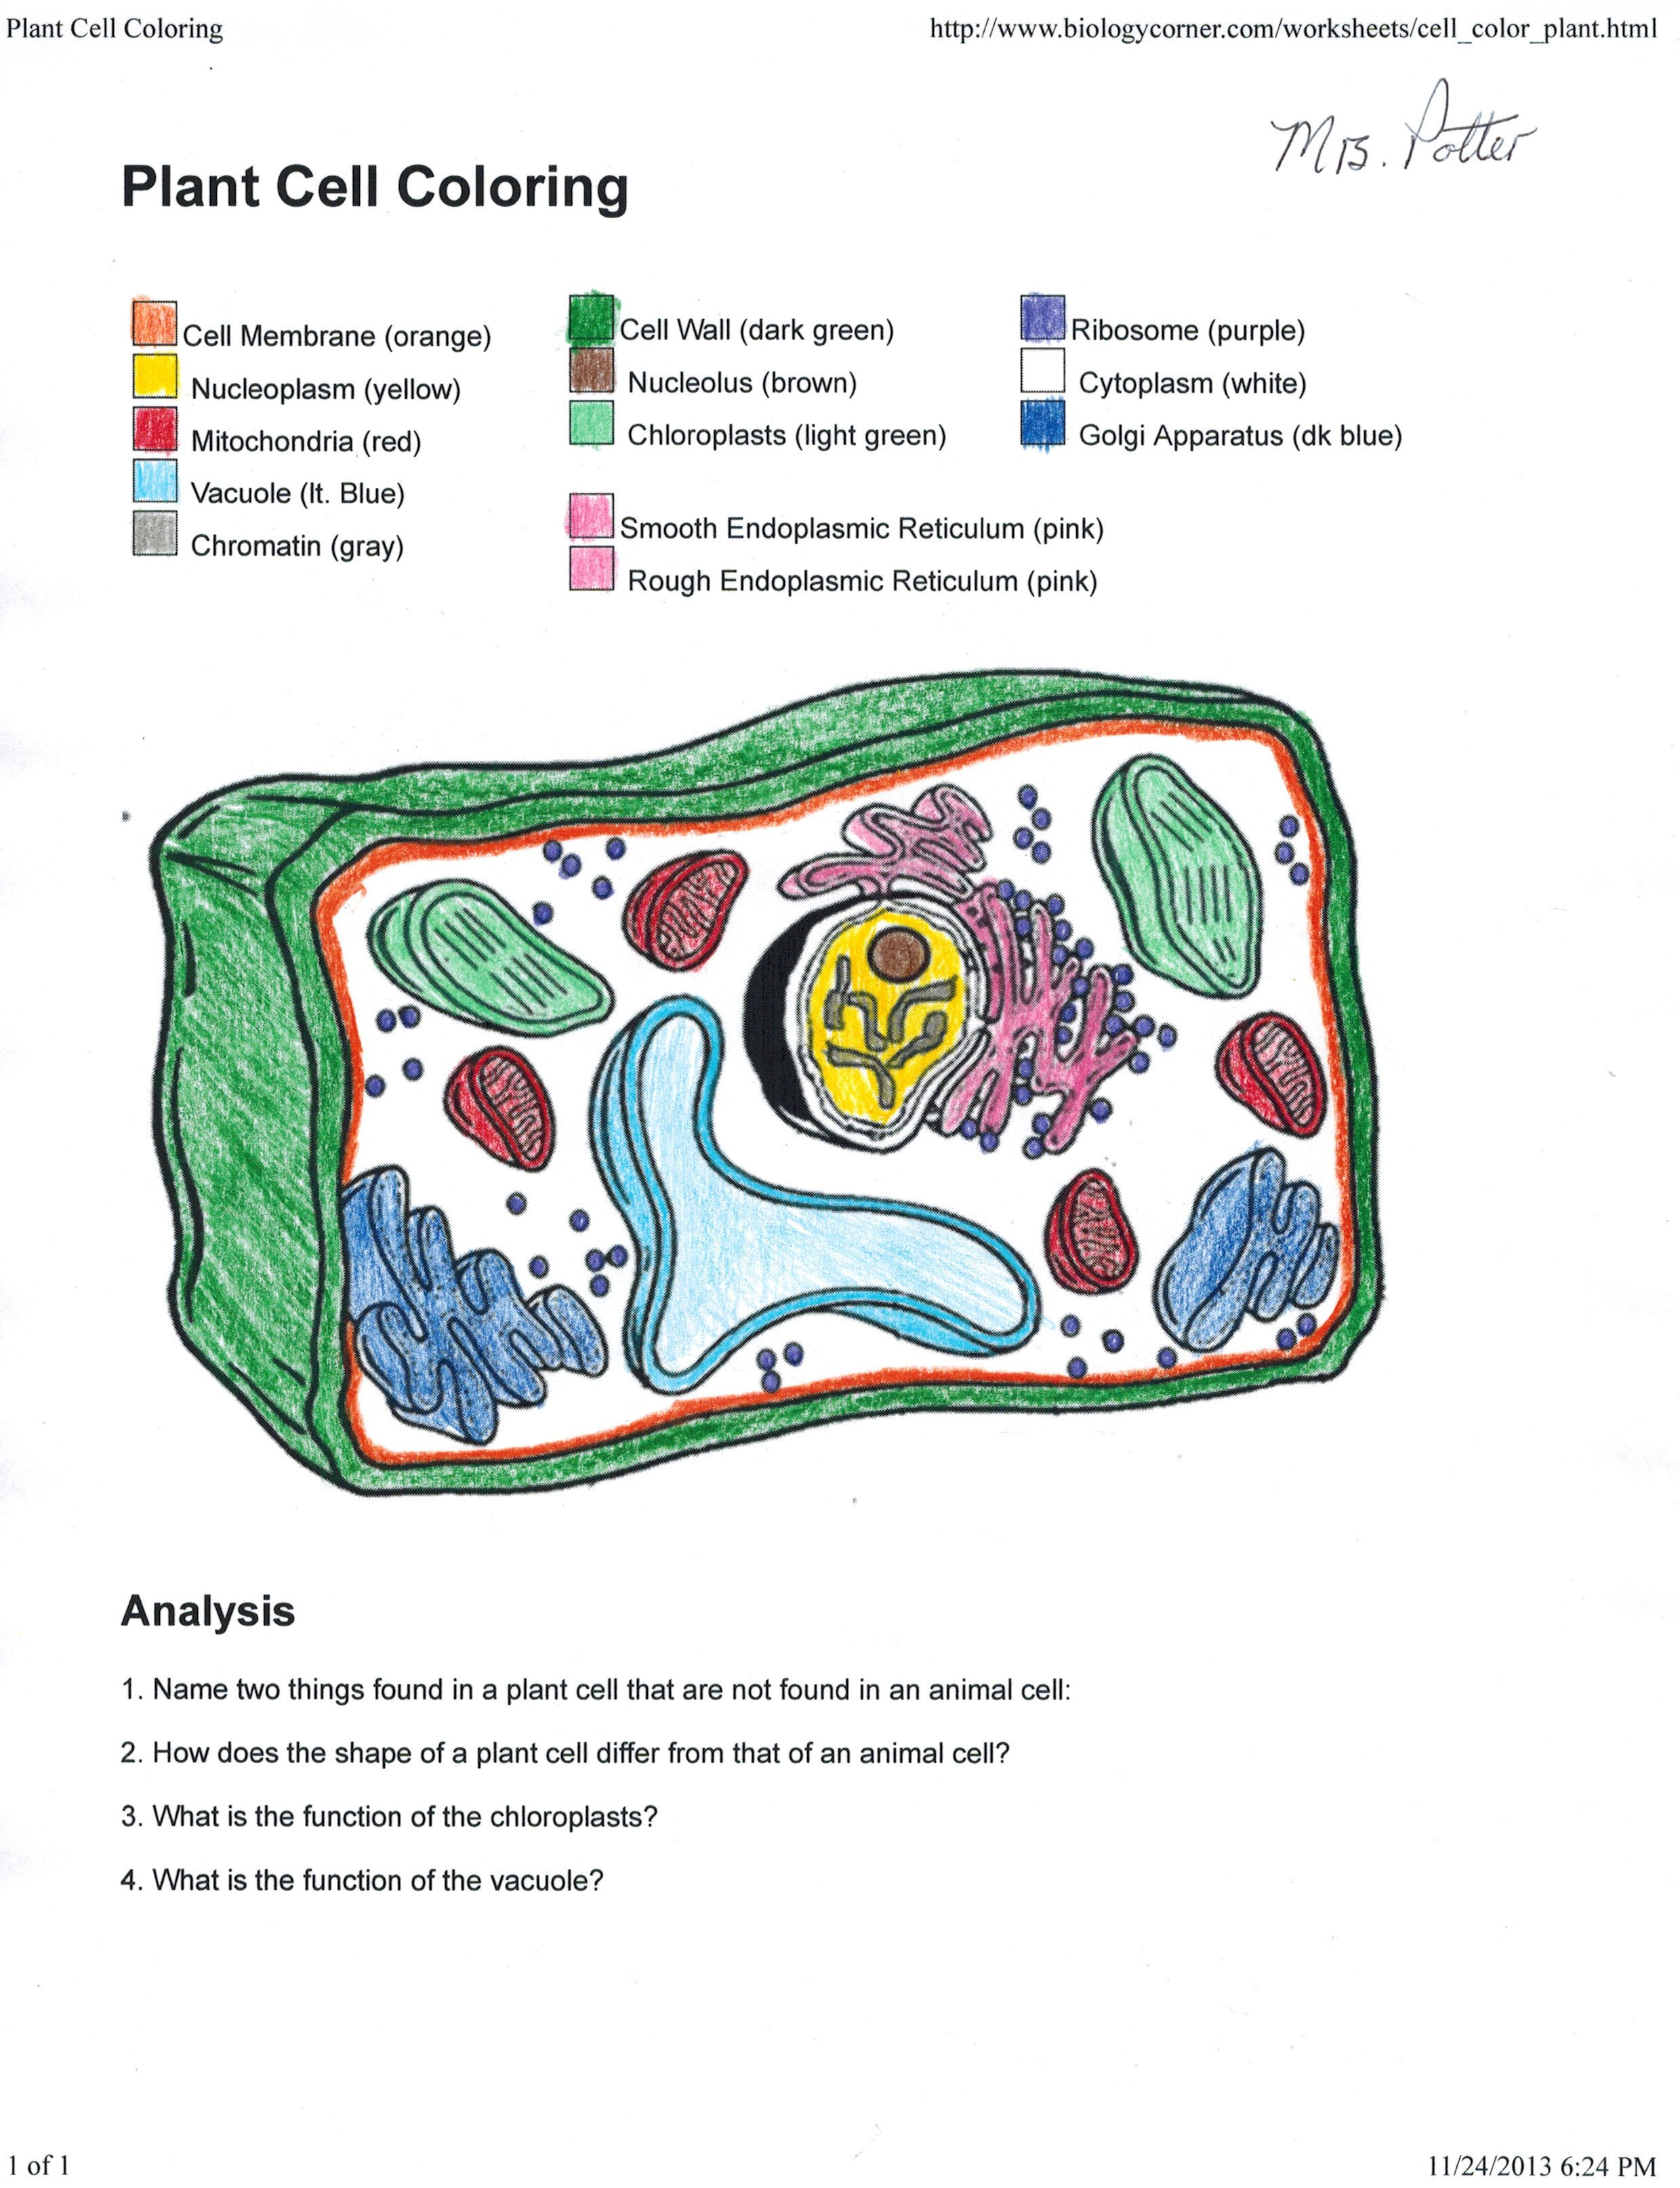 Cell Membrane Coloring Worksheet  Jvzooreview In Plant Cell Coloring Worksheet Key